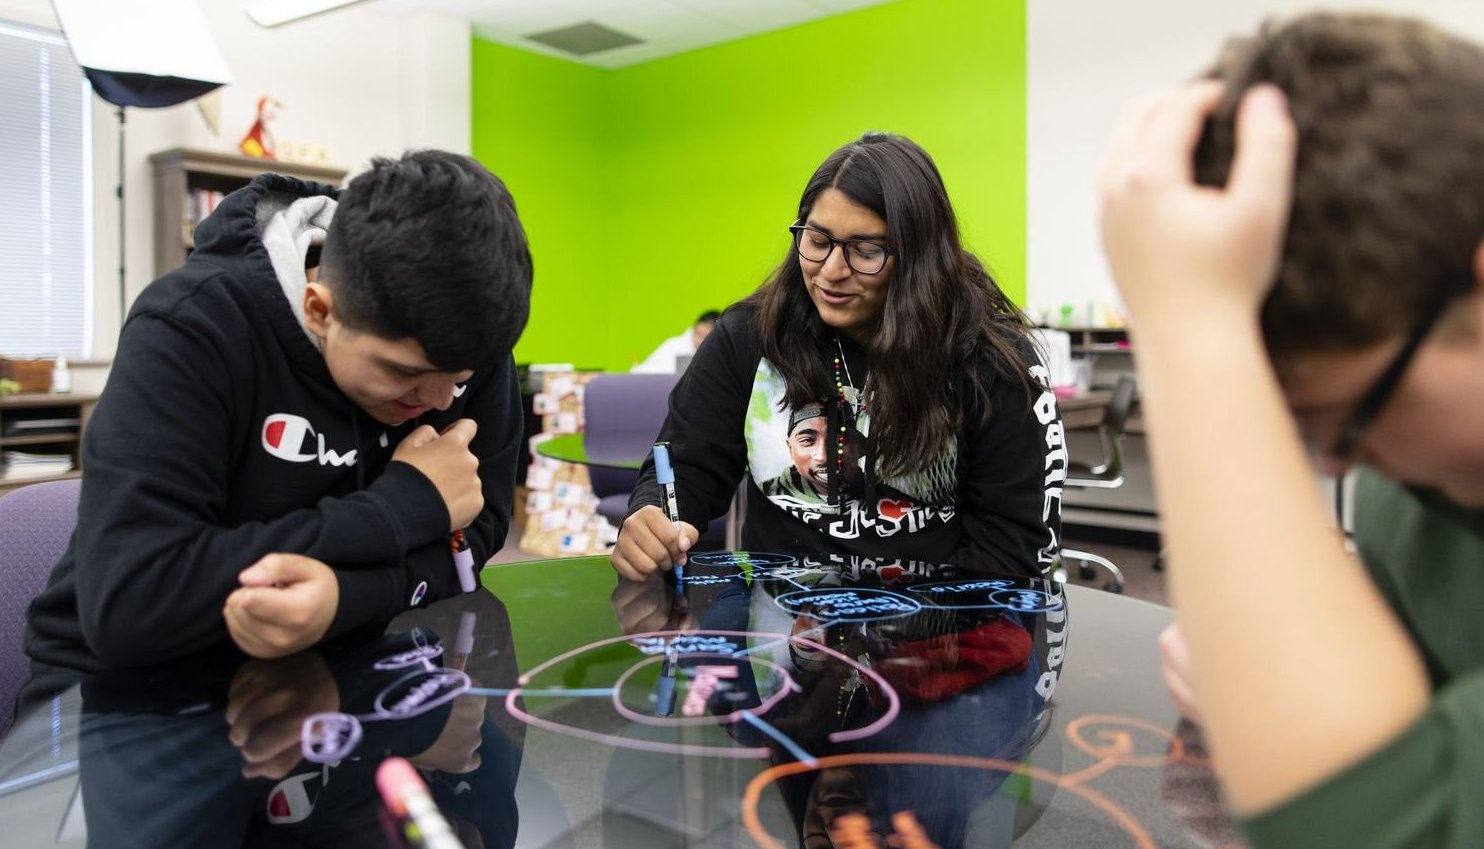 A student draws a diagram with a dry-erase marker on a glass tabletop, while two other students closely view her work.